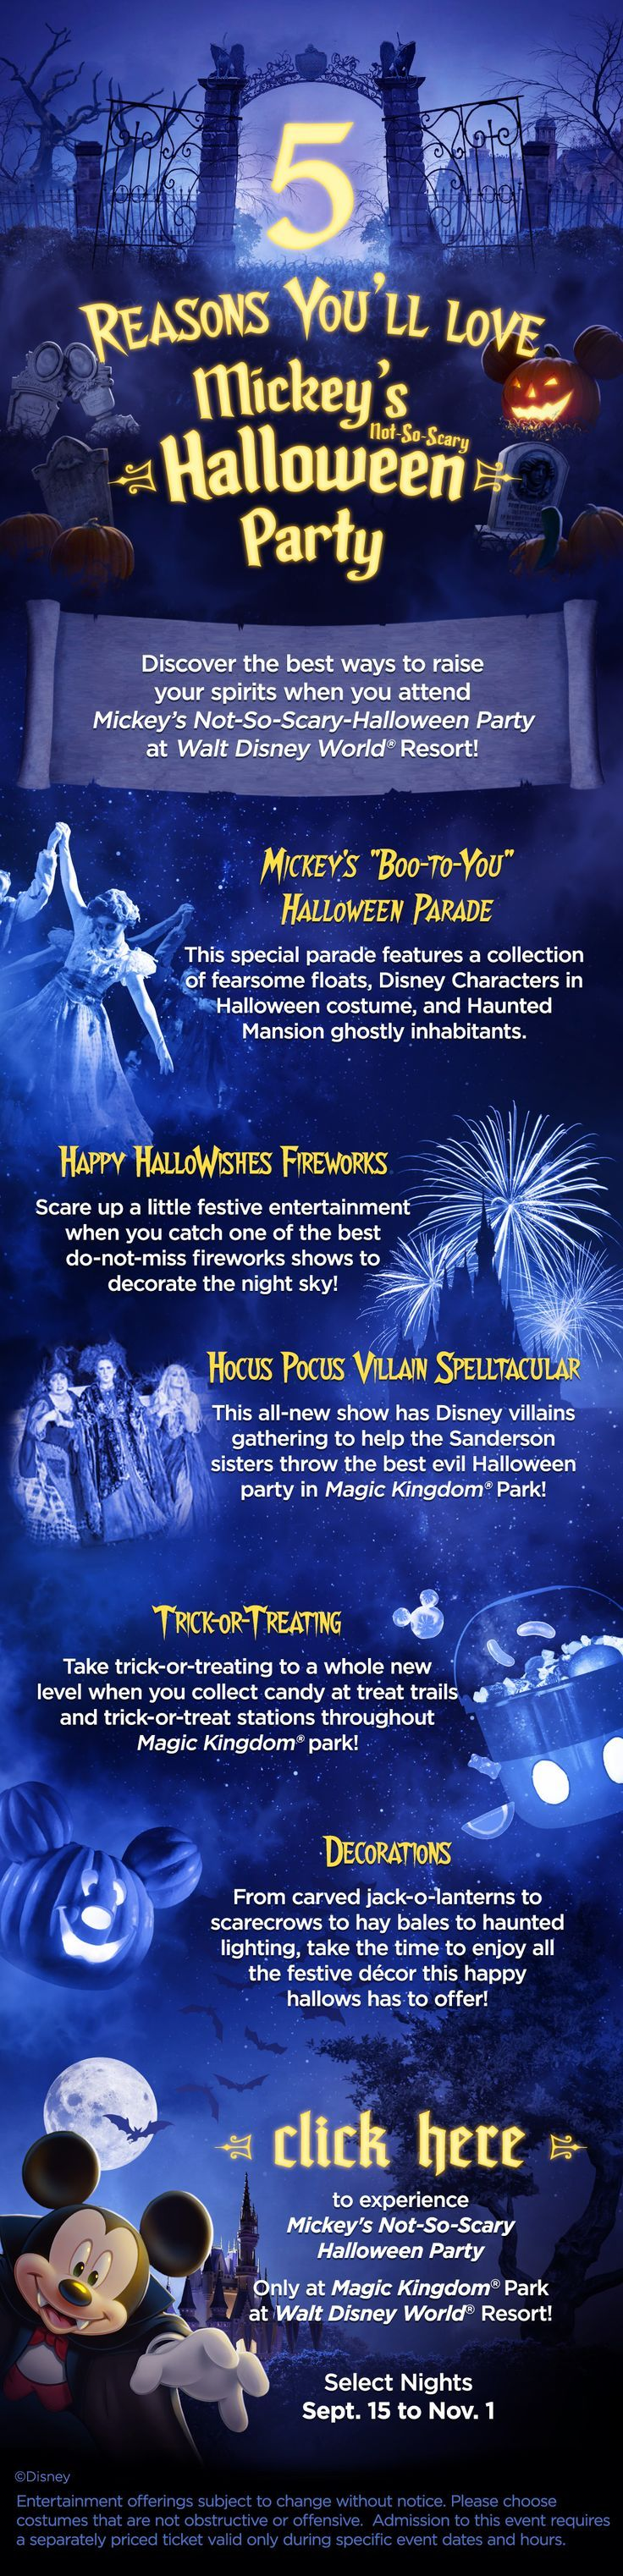 Best 25+ Disneyland halloween party ideas on Pinterest ...